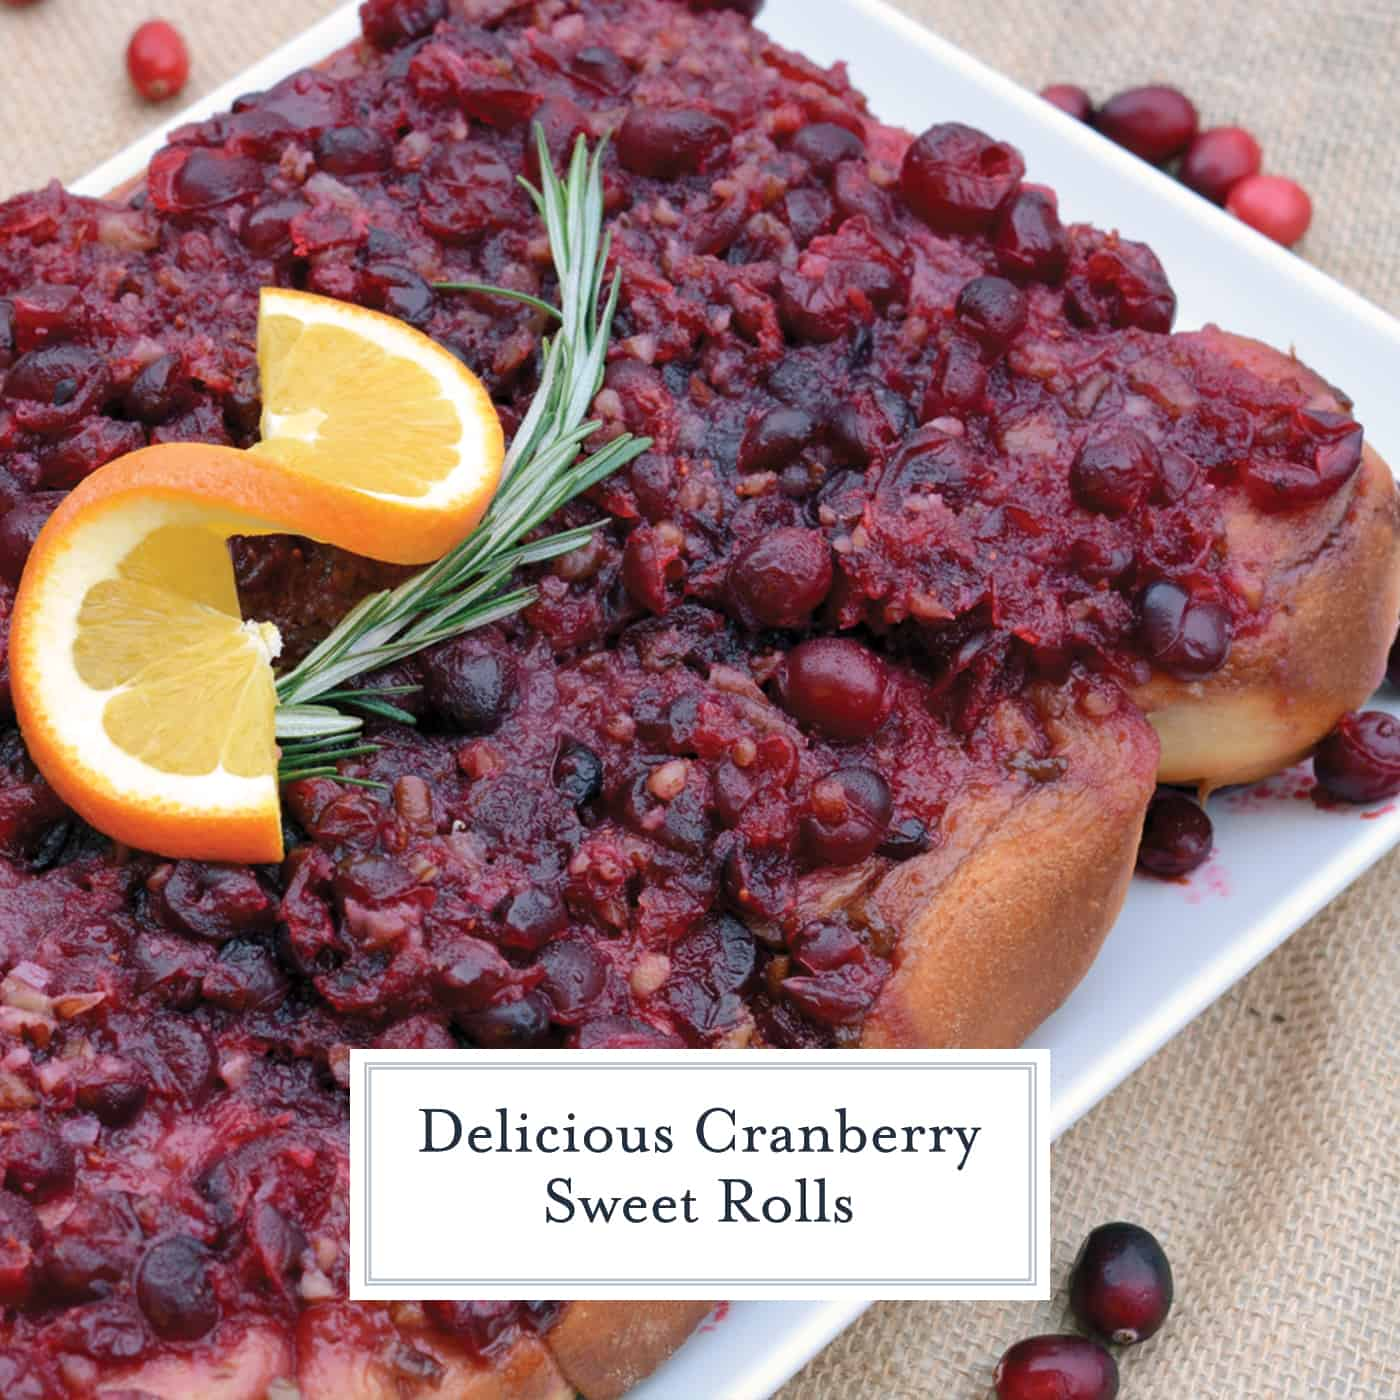 Cranberry sweet rolls are perfect for any holiday breakfast or even dessert. Orange cranberry bread in sweet roll form is an award winning recipe! #cranberrysweetrolls www.savoryexperiments.com